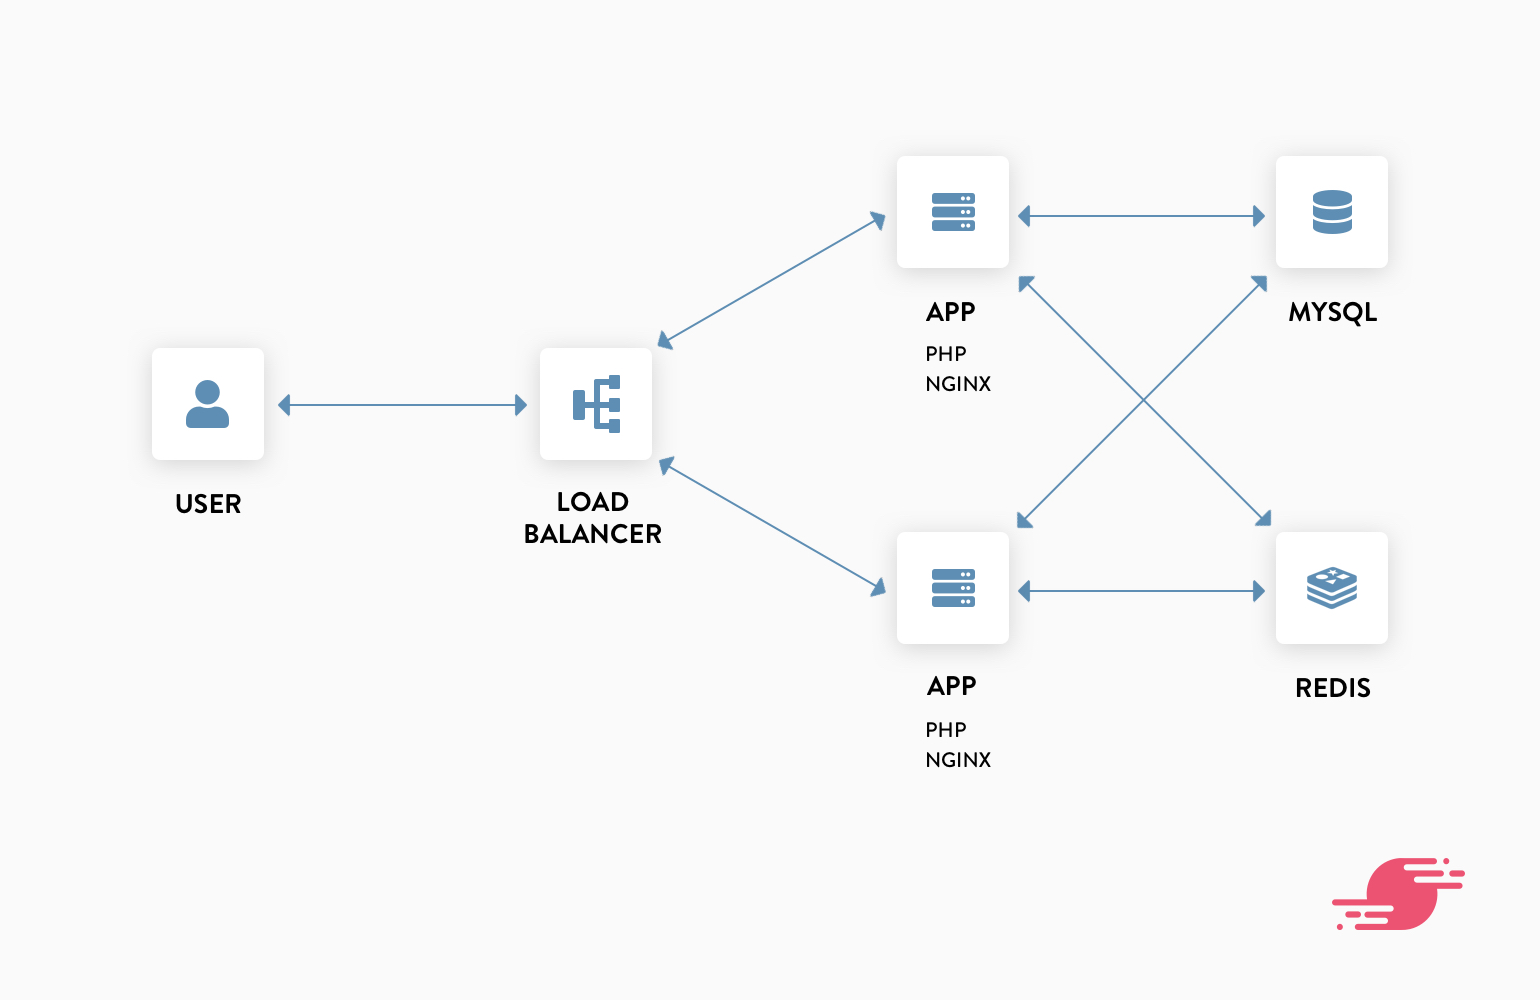 Request flow of load balanced configuration